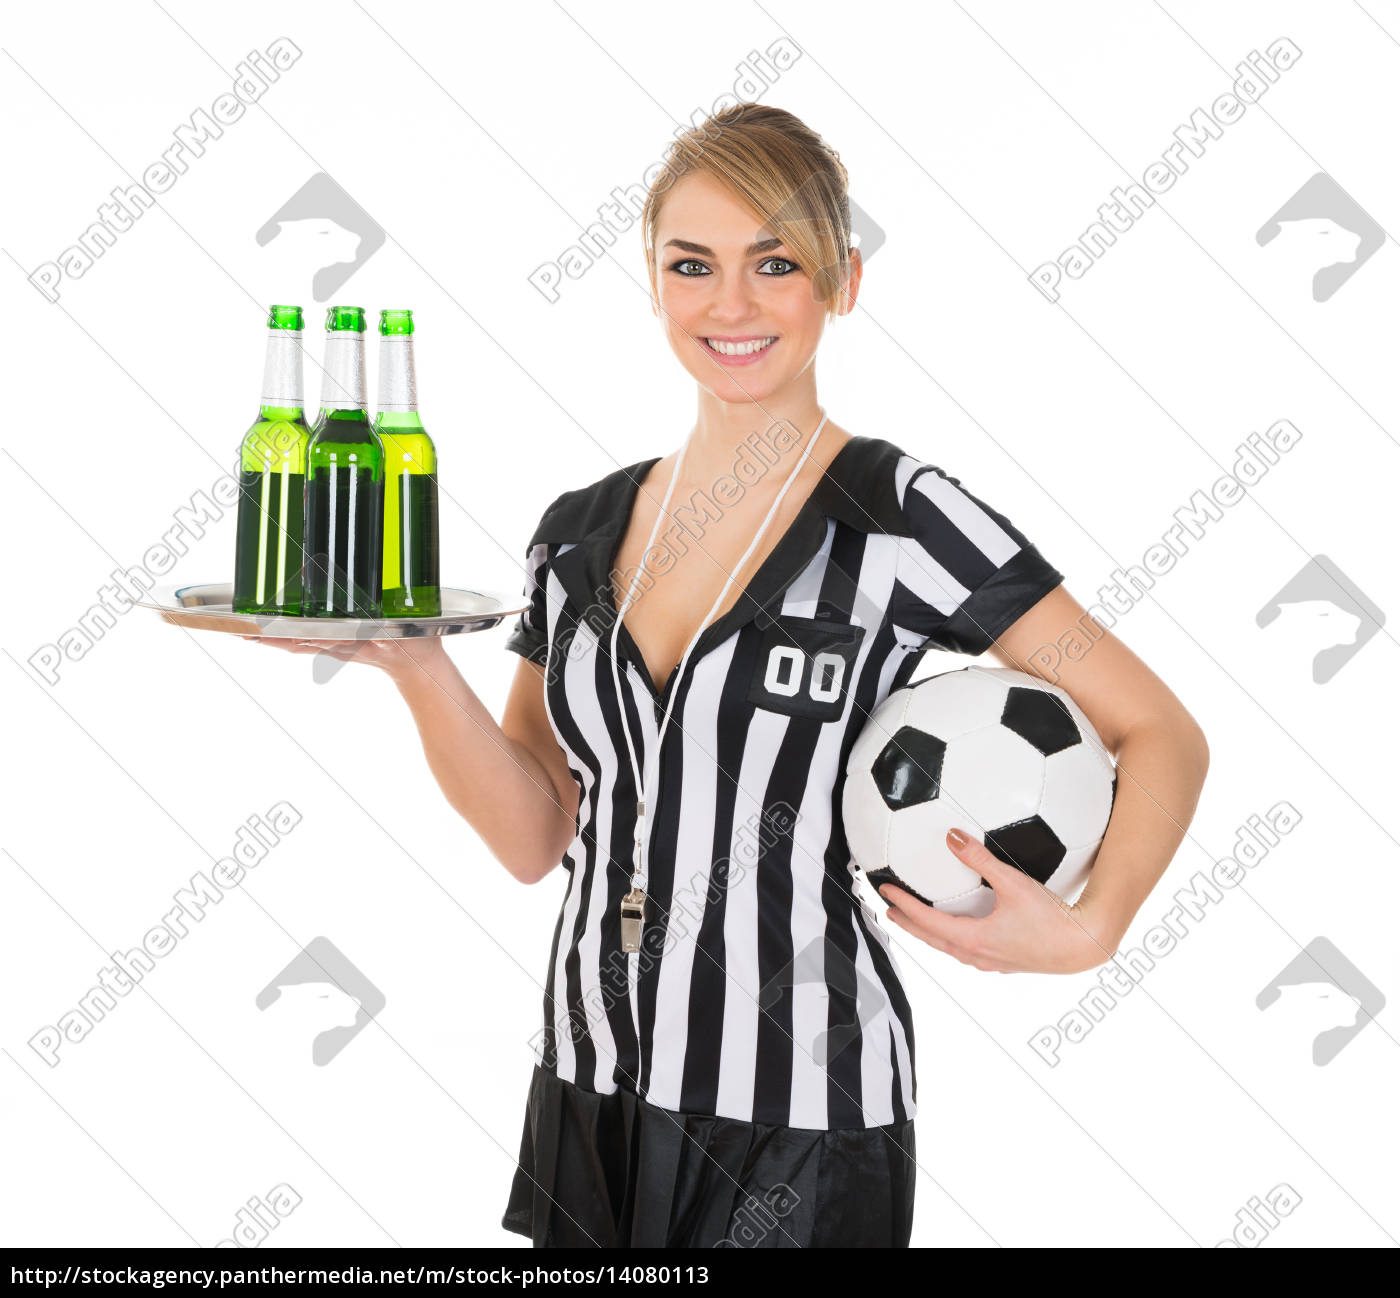 referee, holding, drinks, and, football - 14080113